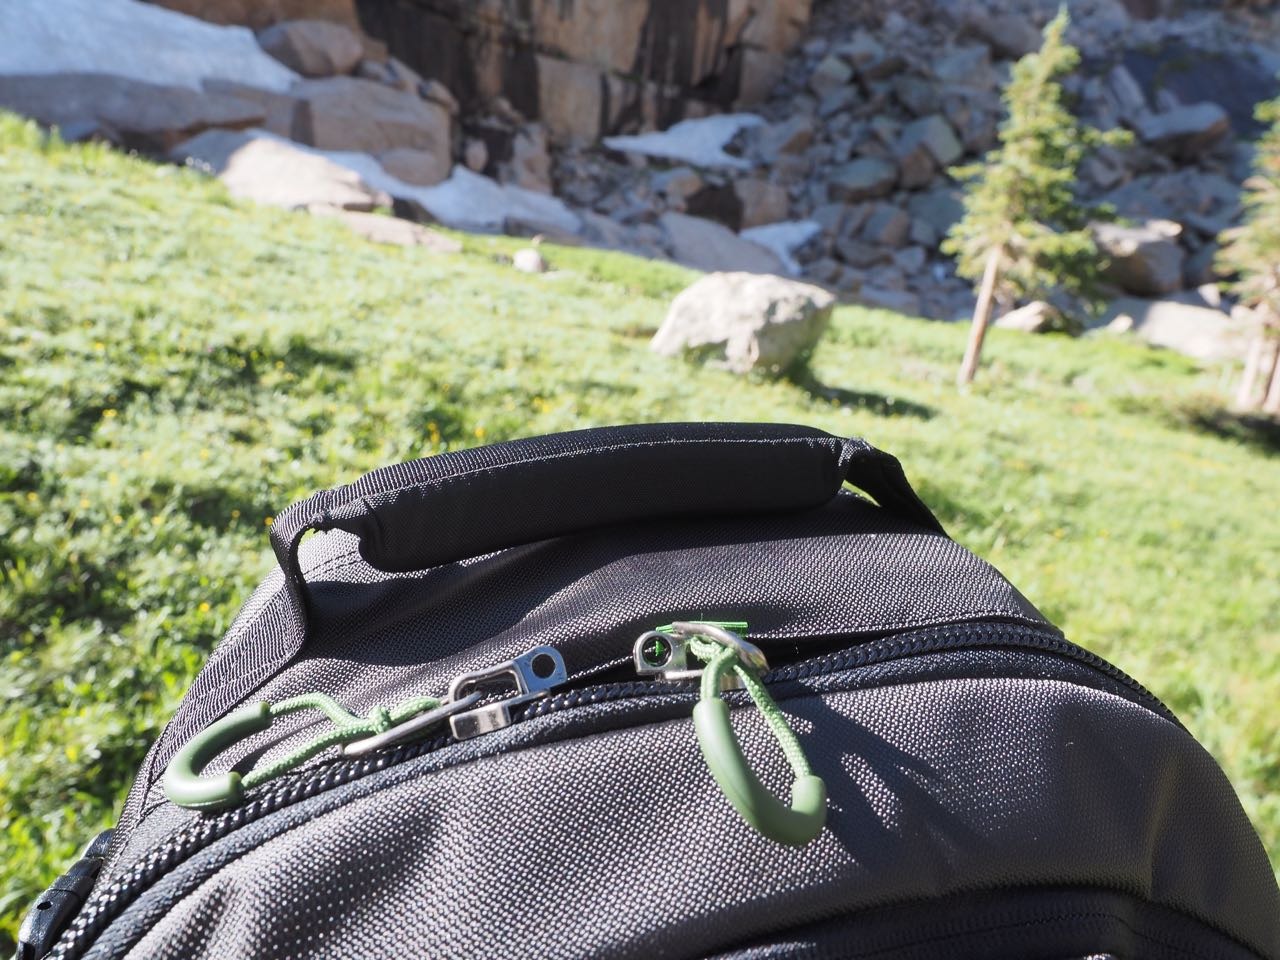 As The MindShift Gear FirstLight 20L Is Meant For The Trail And Town, The  Zippers Have Loops For A Lock To Keep Your Gear From Getting Jacked.